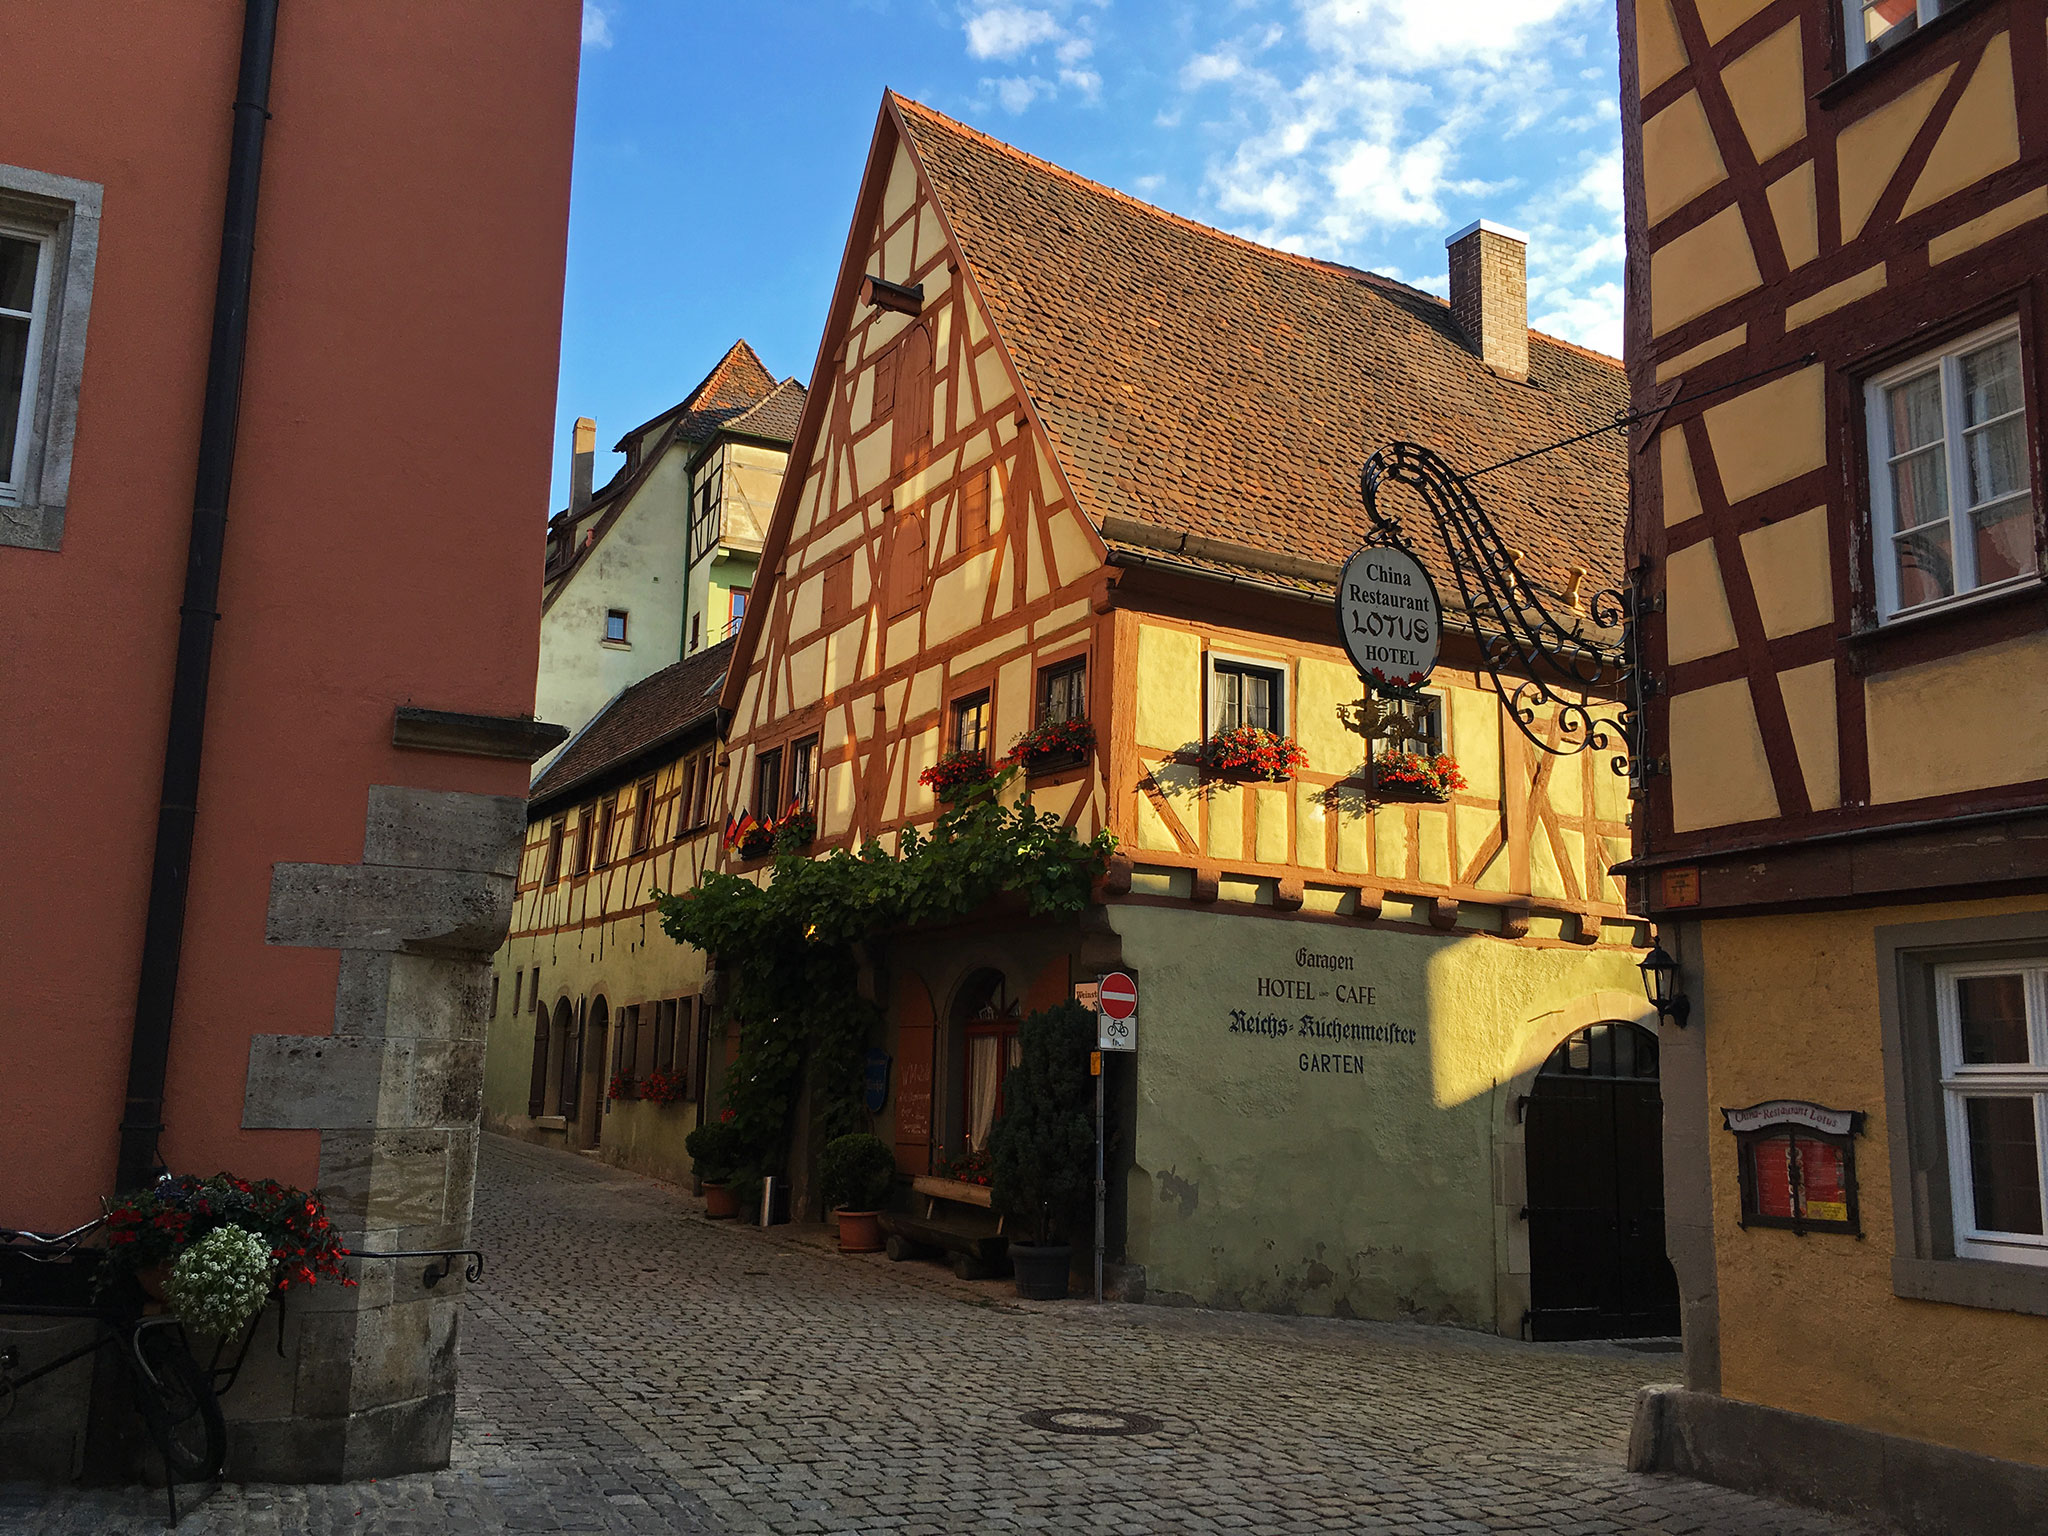 Rothenburg streets & buildings